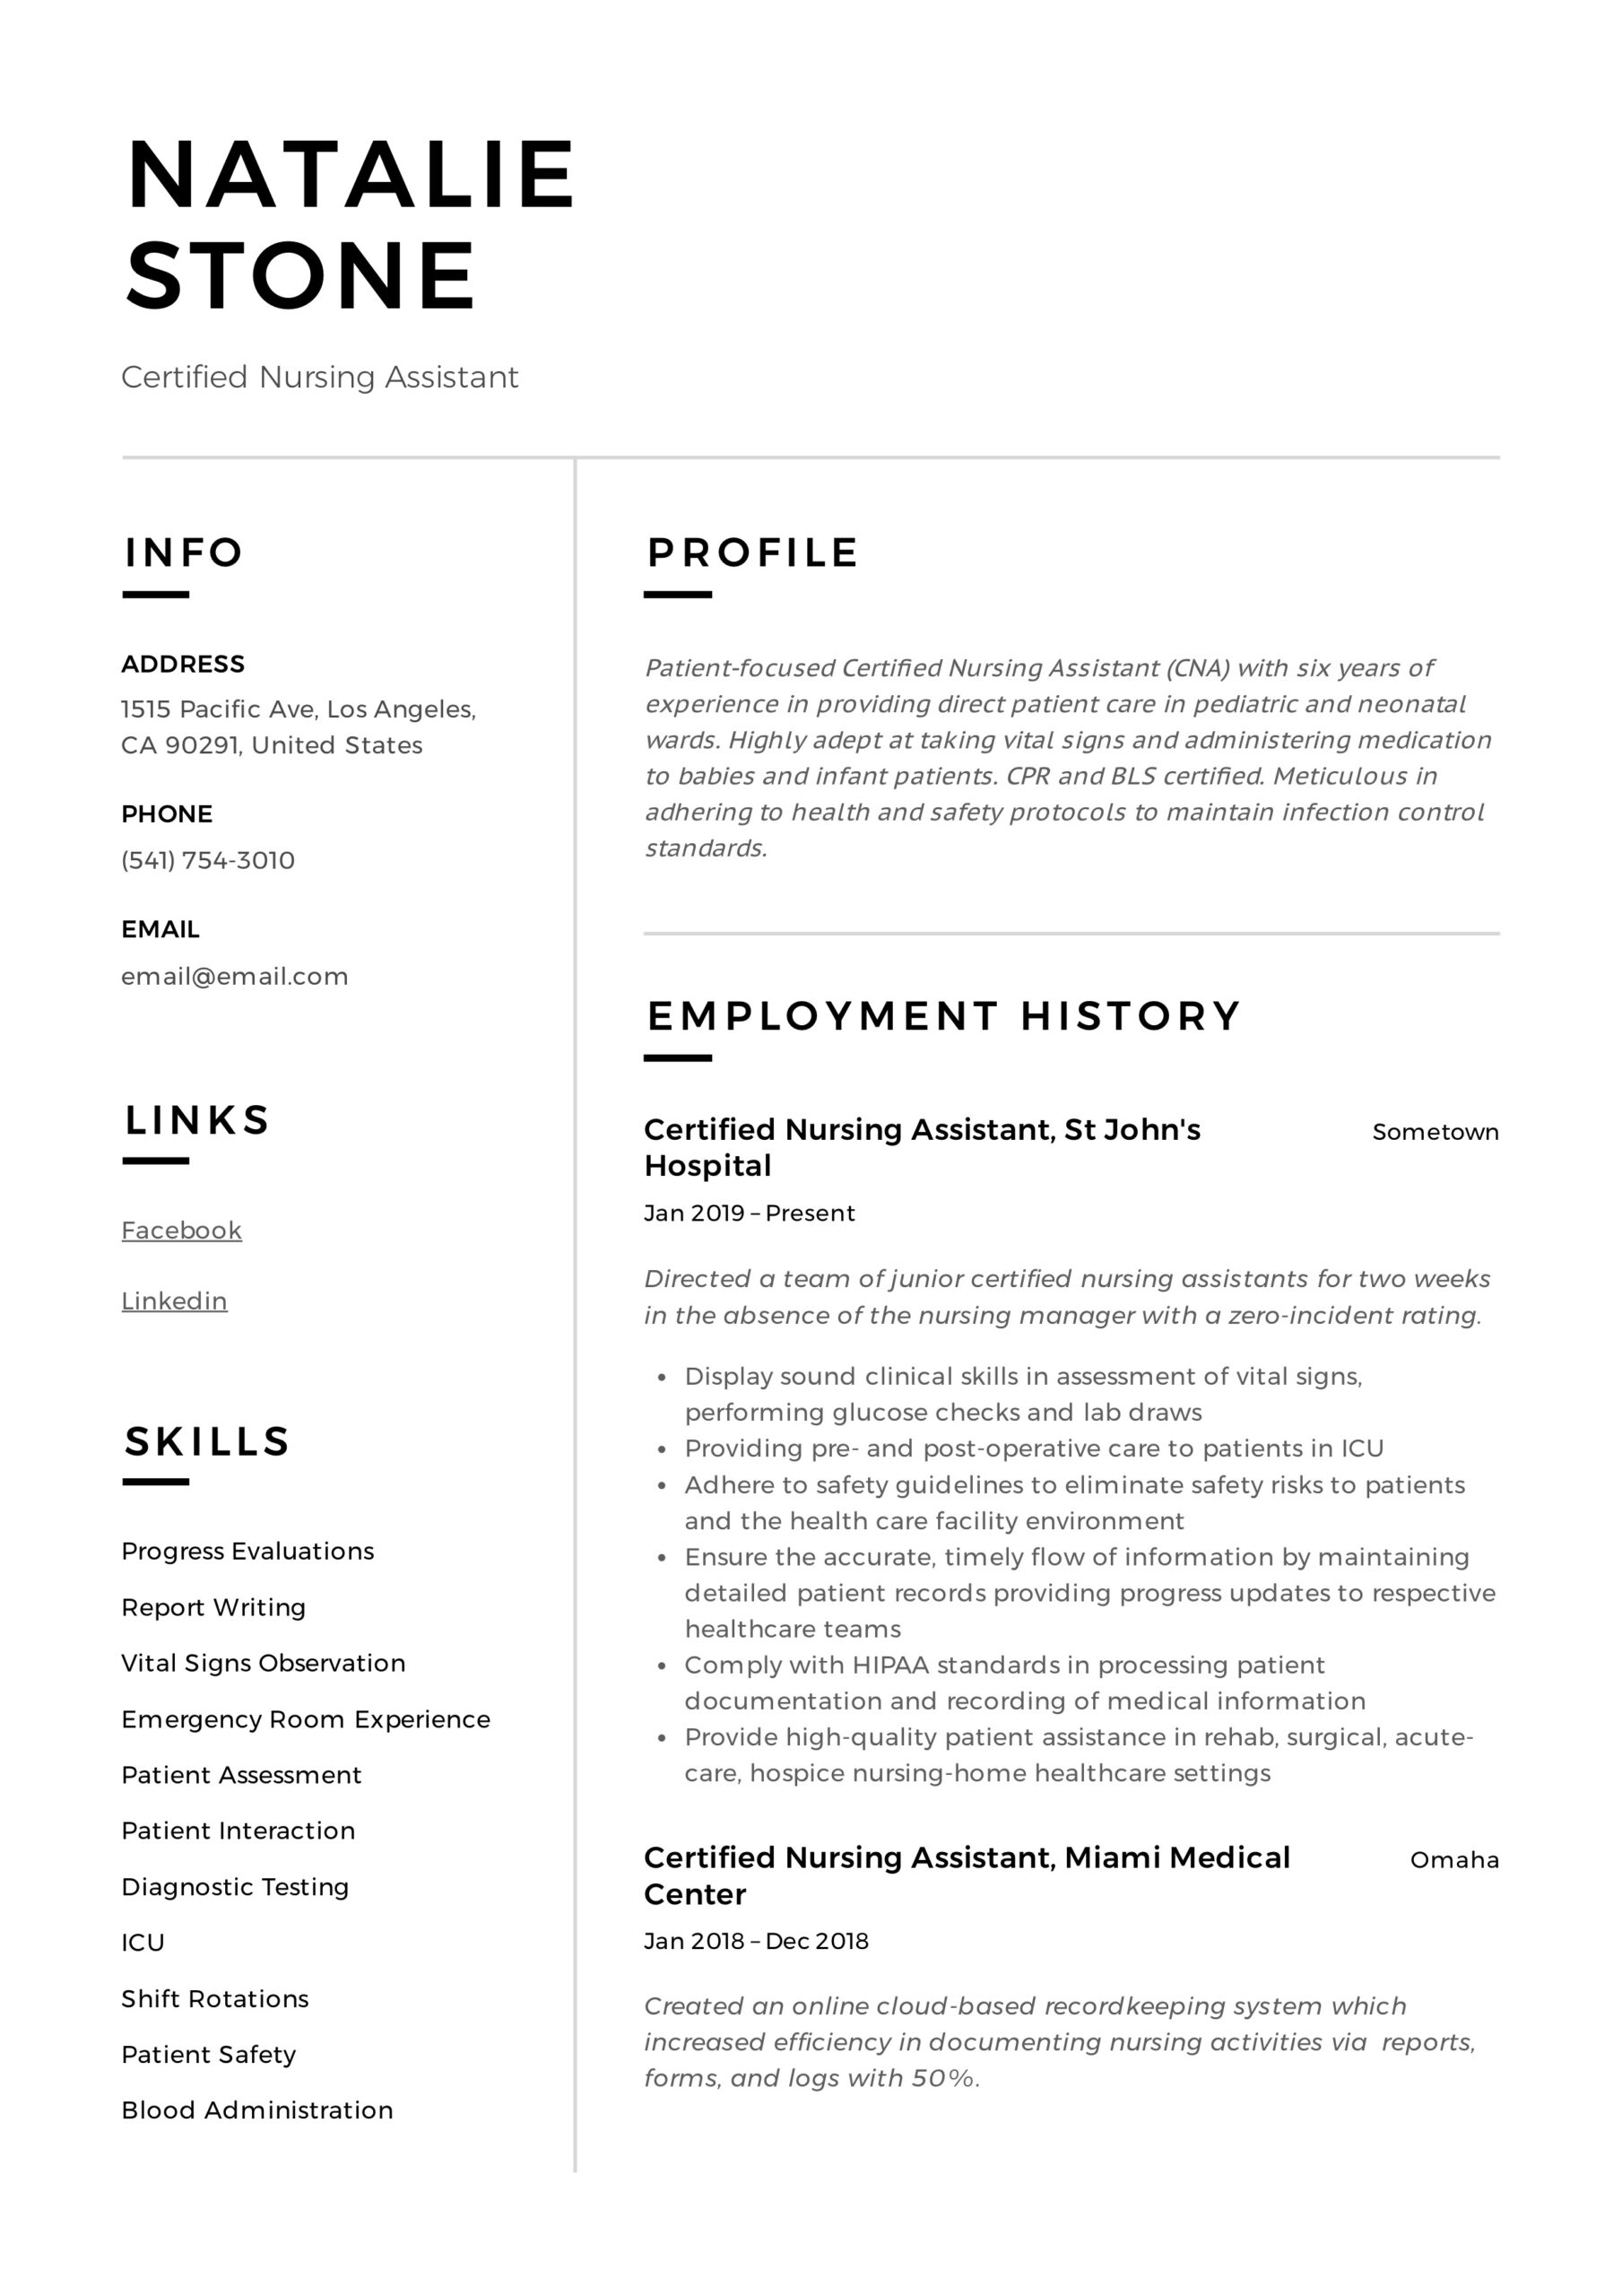 certified nursing assistant resume writing guide templates cna description duties ob gyn Resume Cna Description Duties Resume